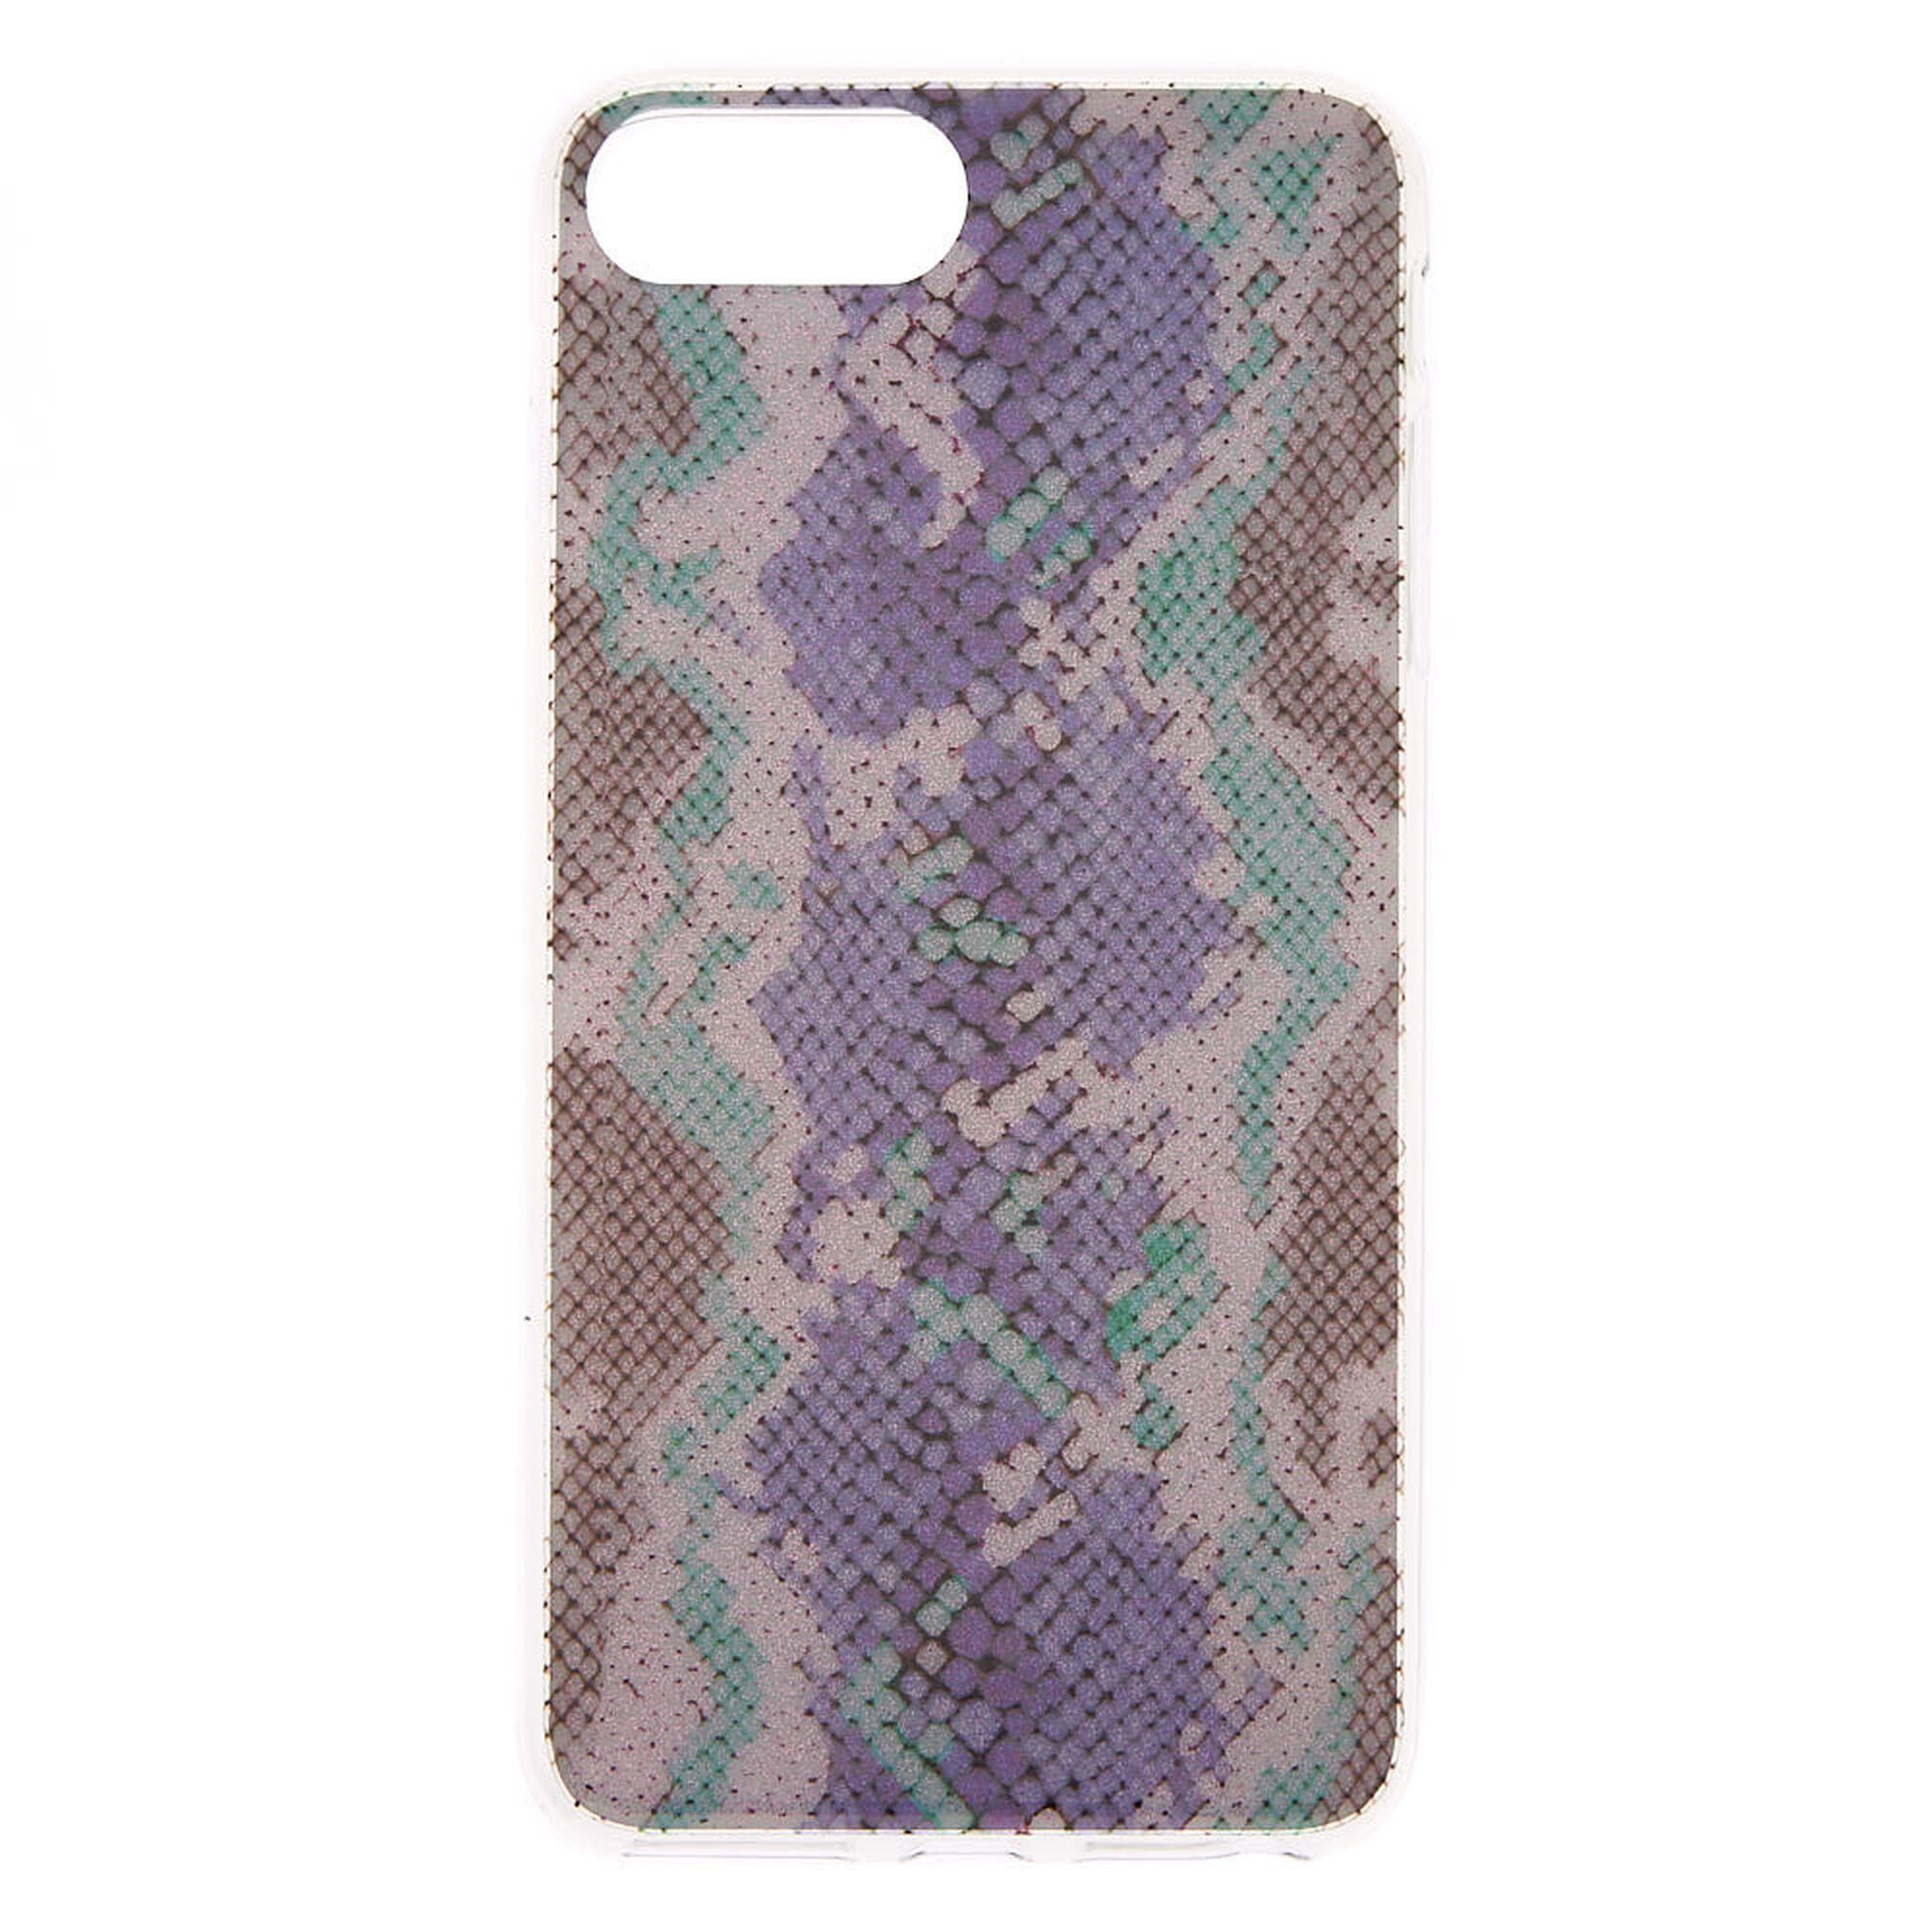 low priced feaba 5f64b Glitter Snake Skin Phone Case - Fits iPhone 6/7/8 Plus